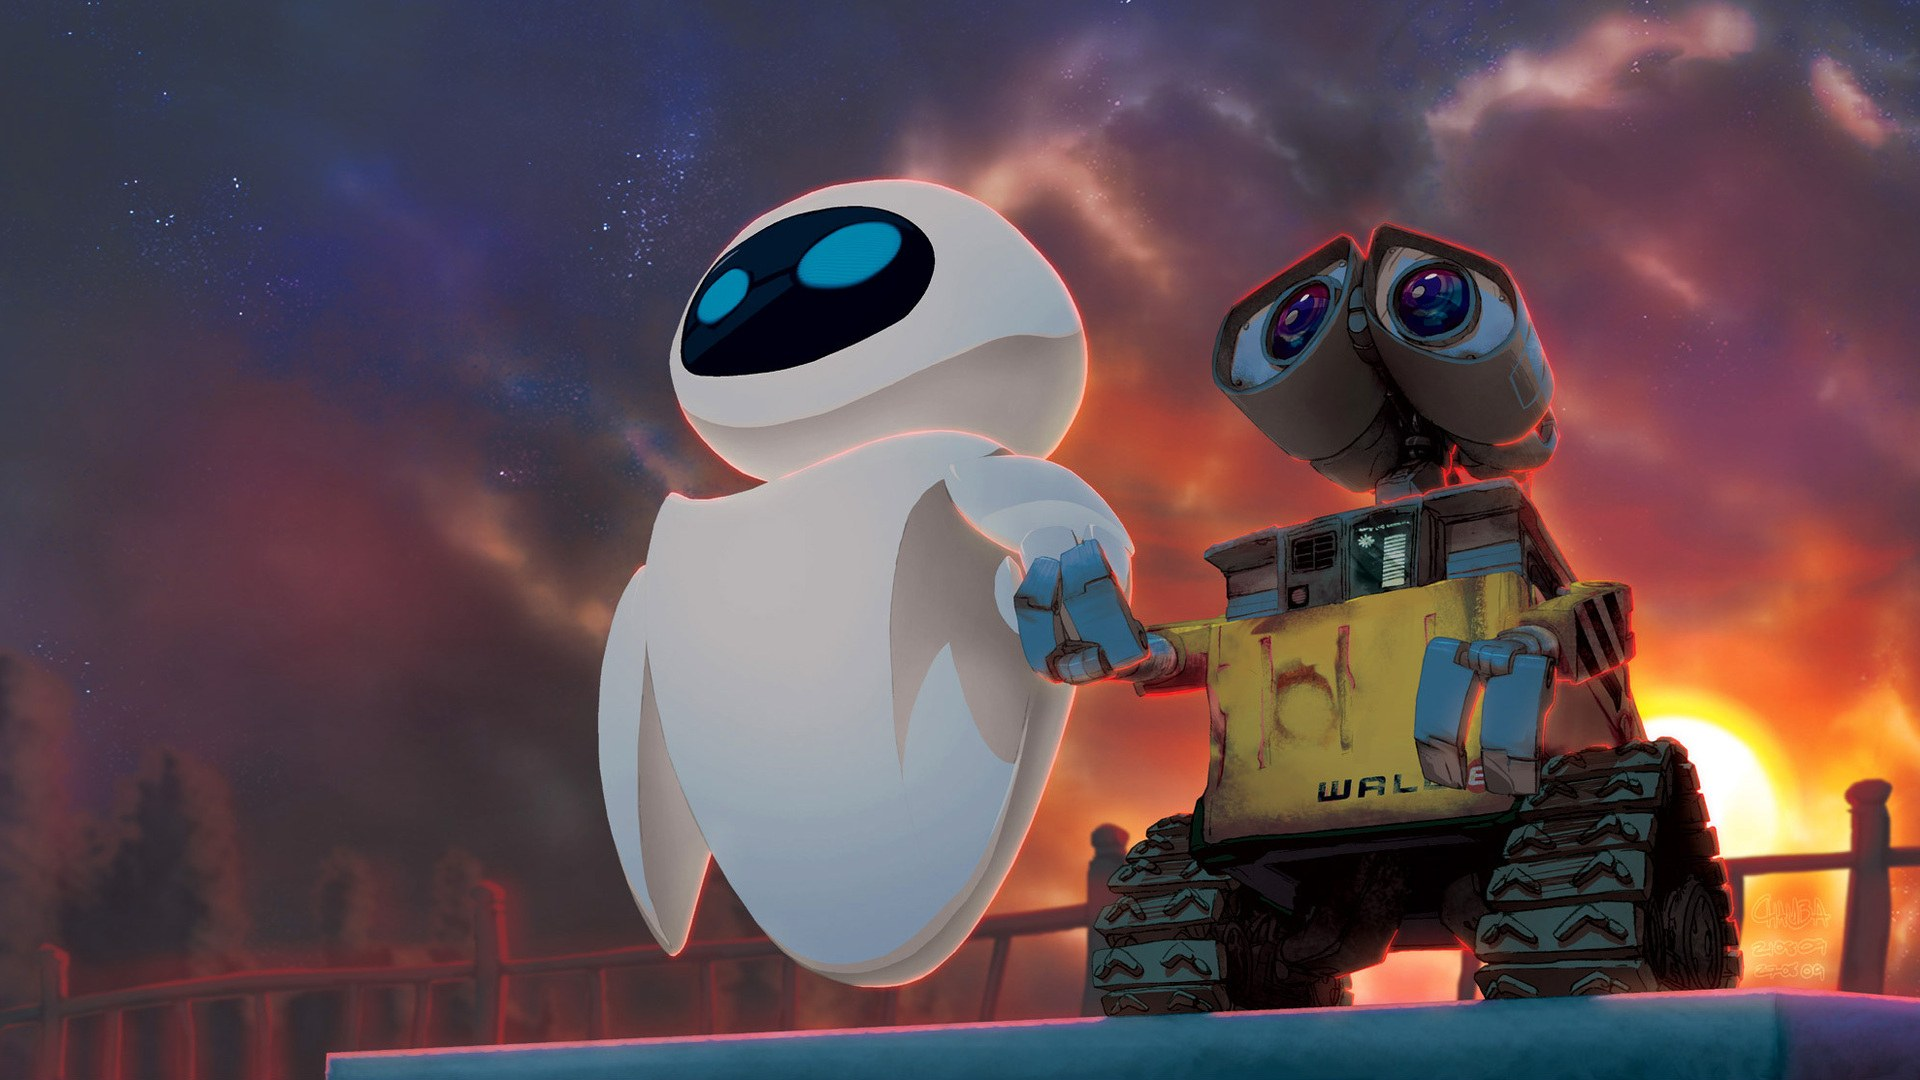 wall-e wallpapers high quality | download free